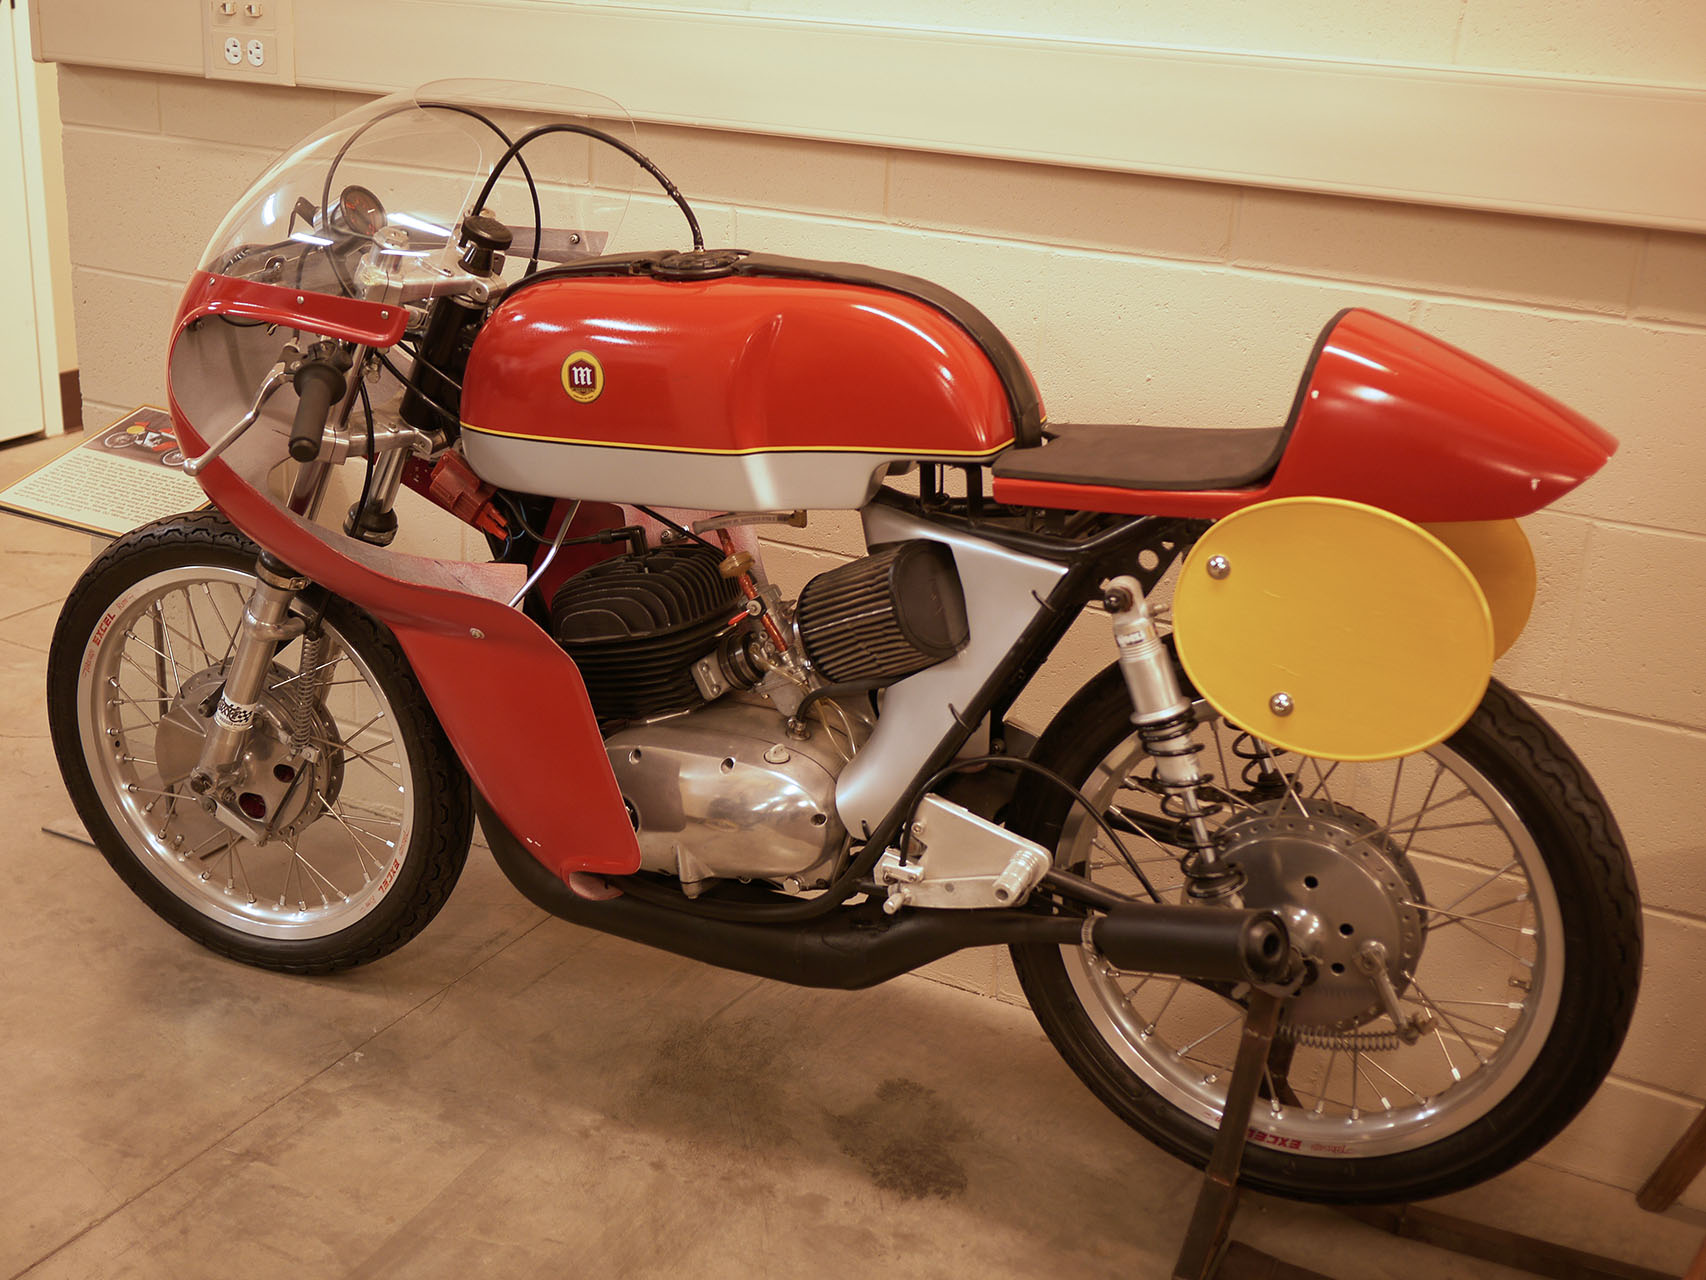 Fantastic Montessa racer. Two stroke Spanish royalty. Made to tear through Montjuic Park at high speed.